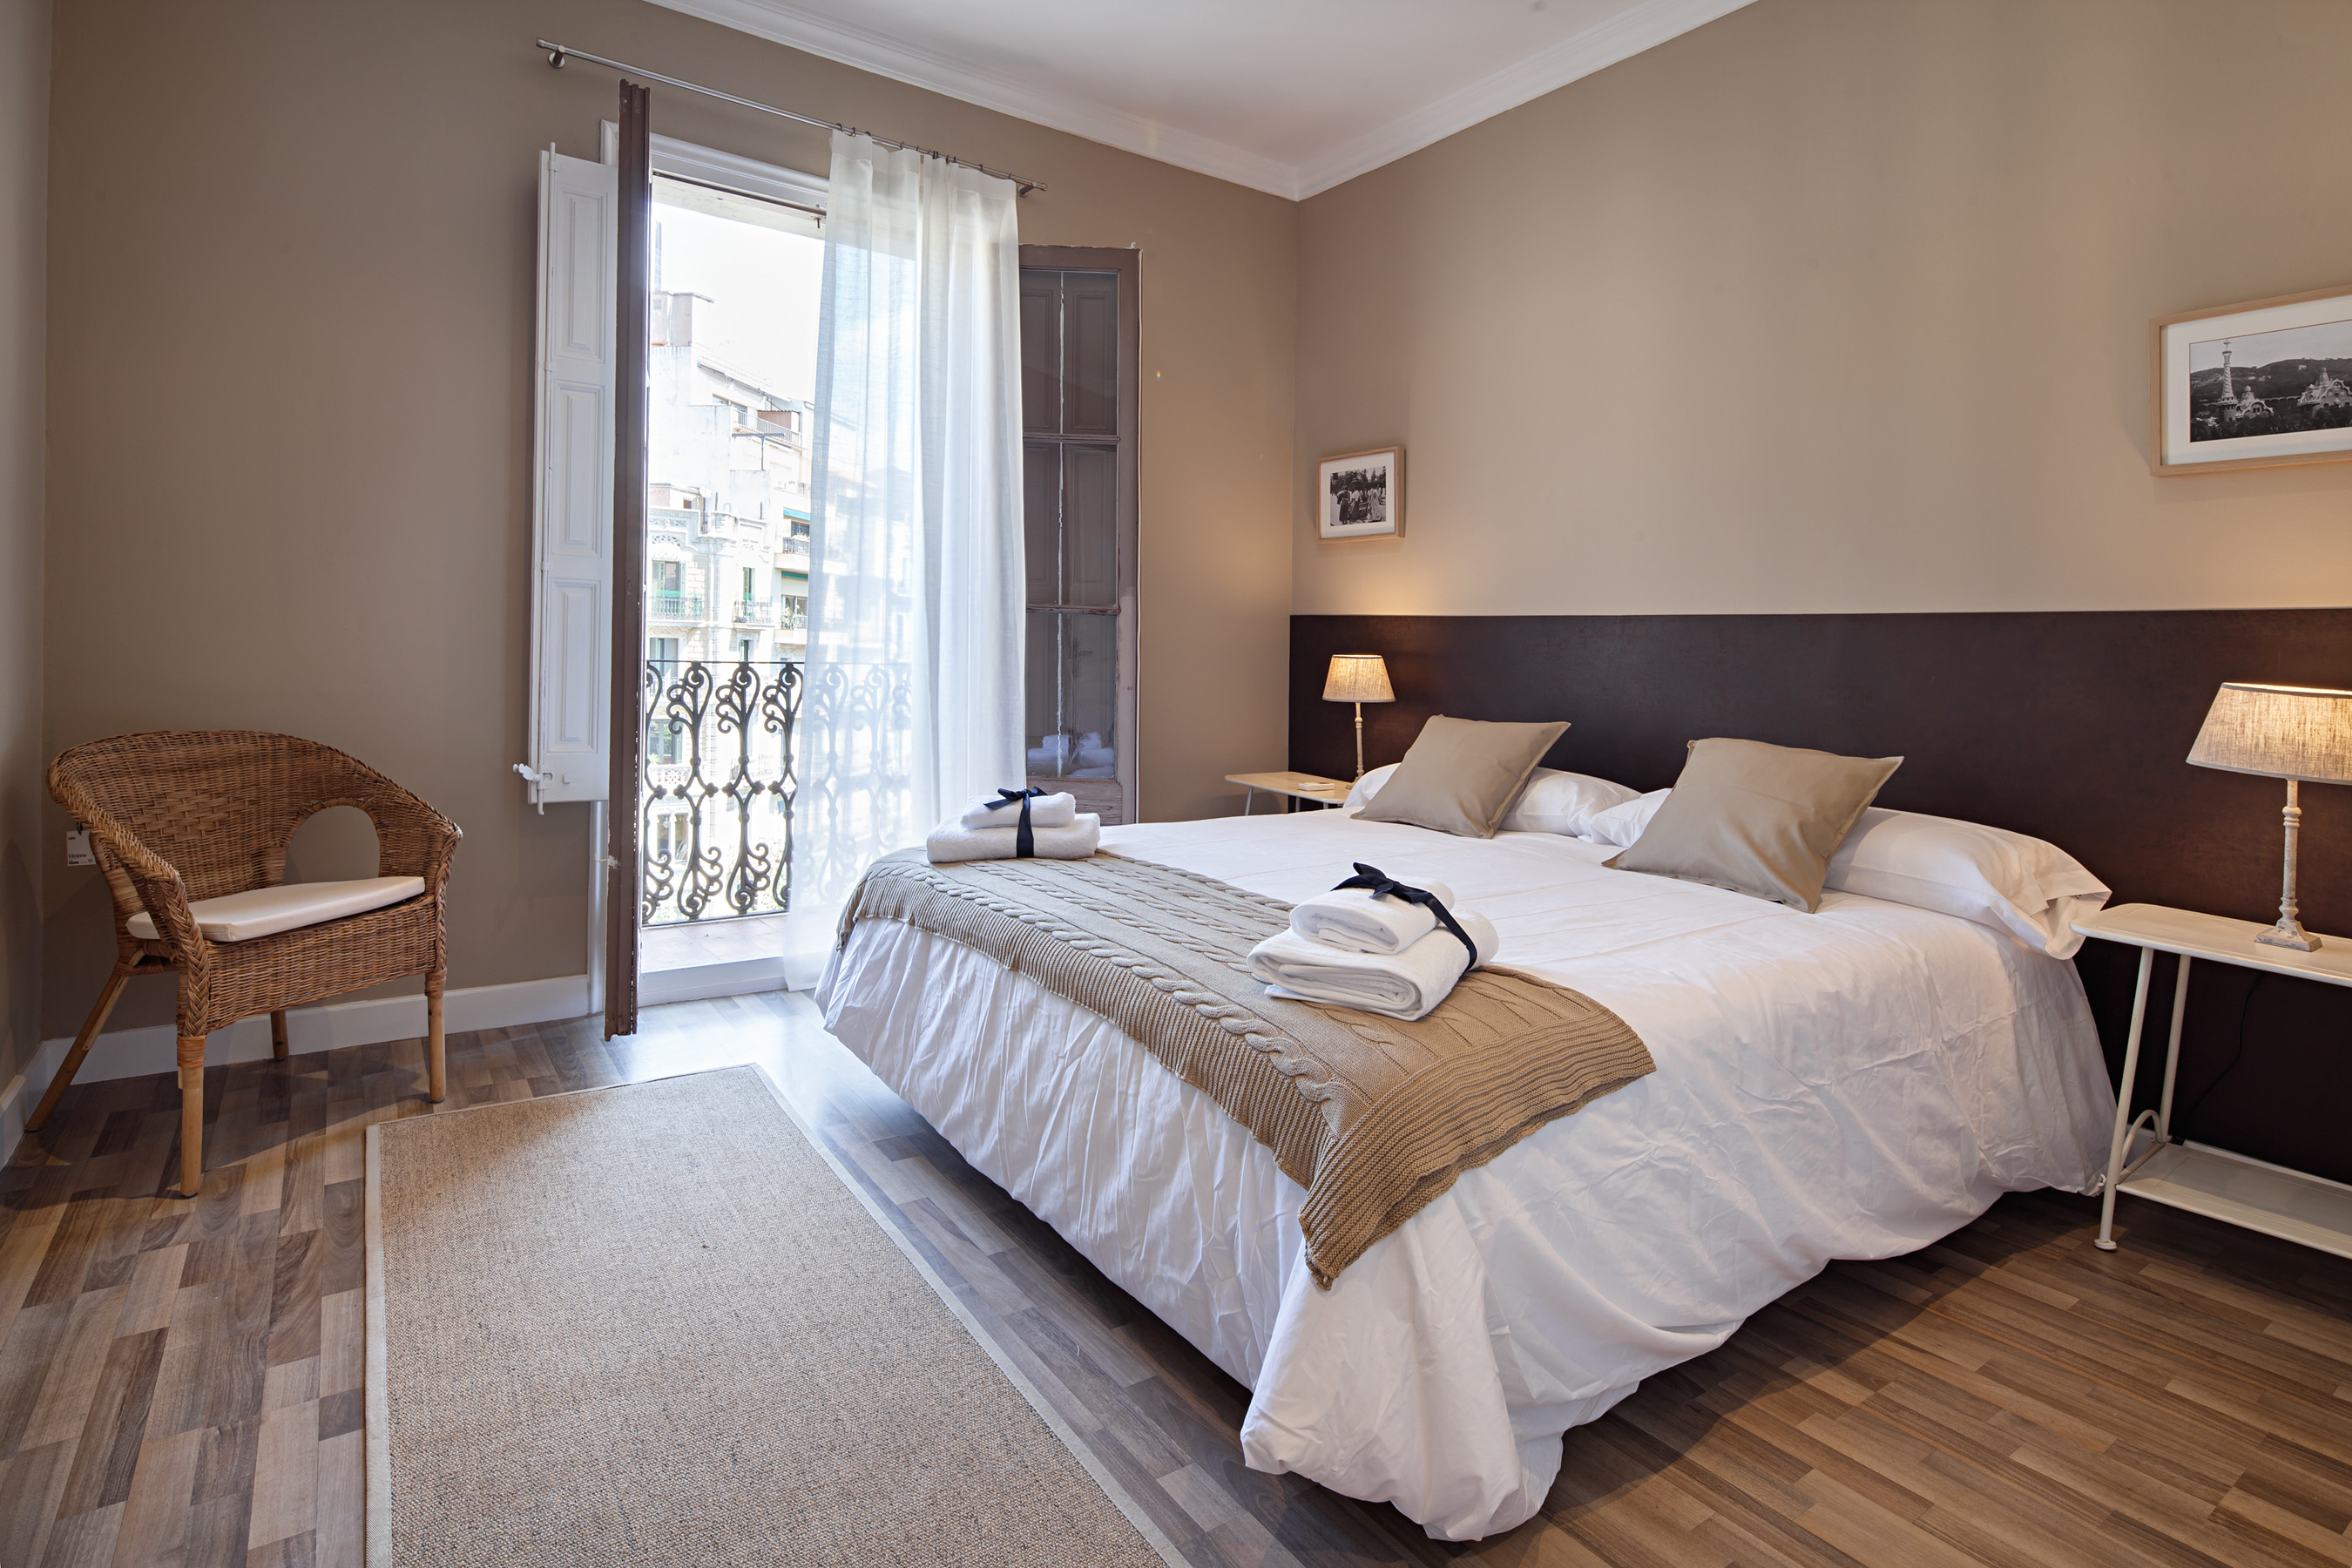 Barcelona Catalonia Vacation Rental Comfortable 2 Bedroom Apartment In A Popular Area 2